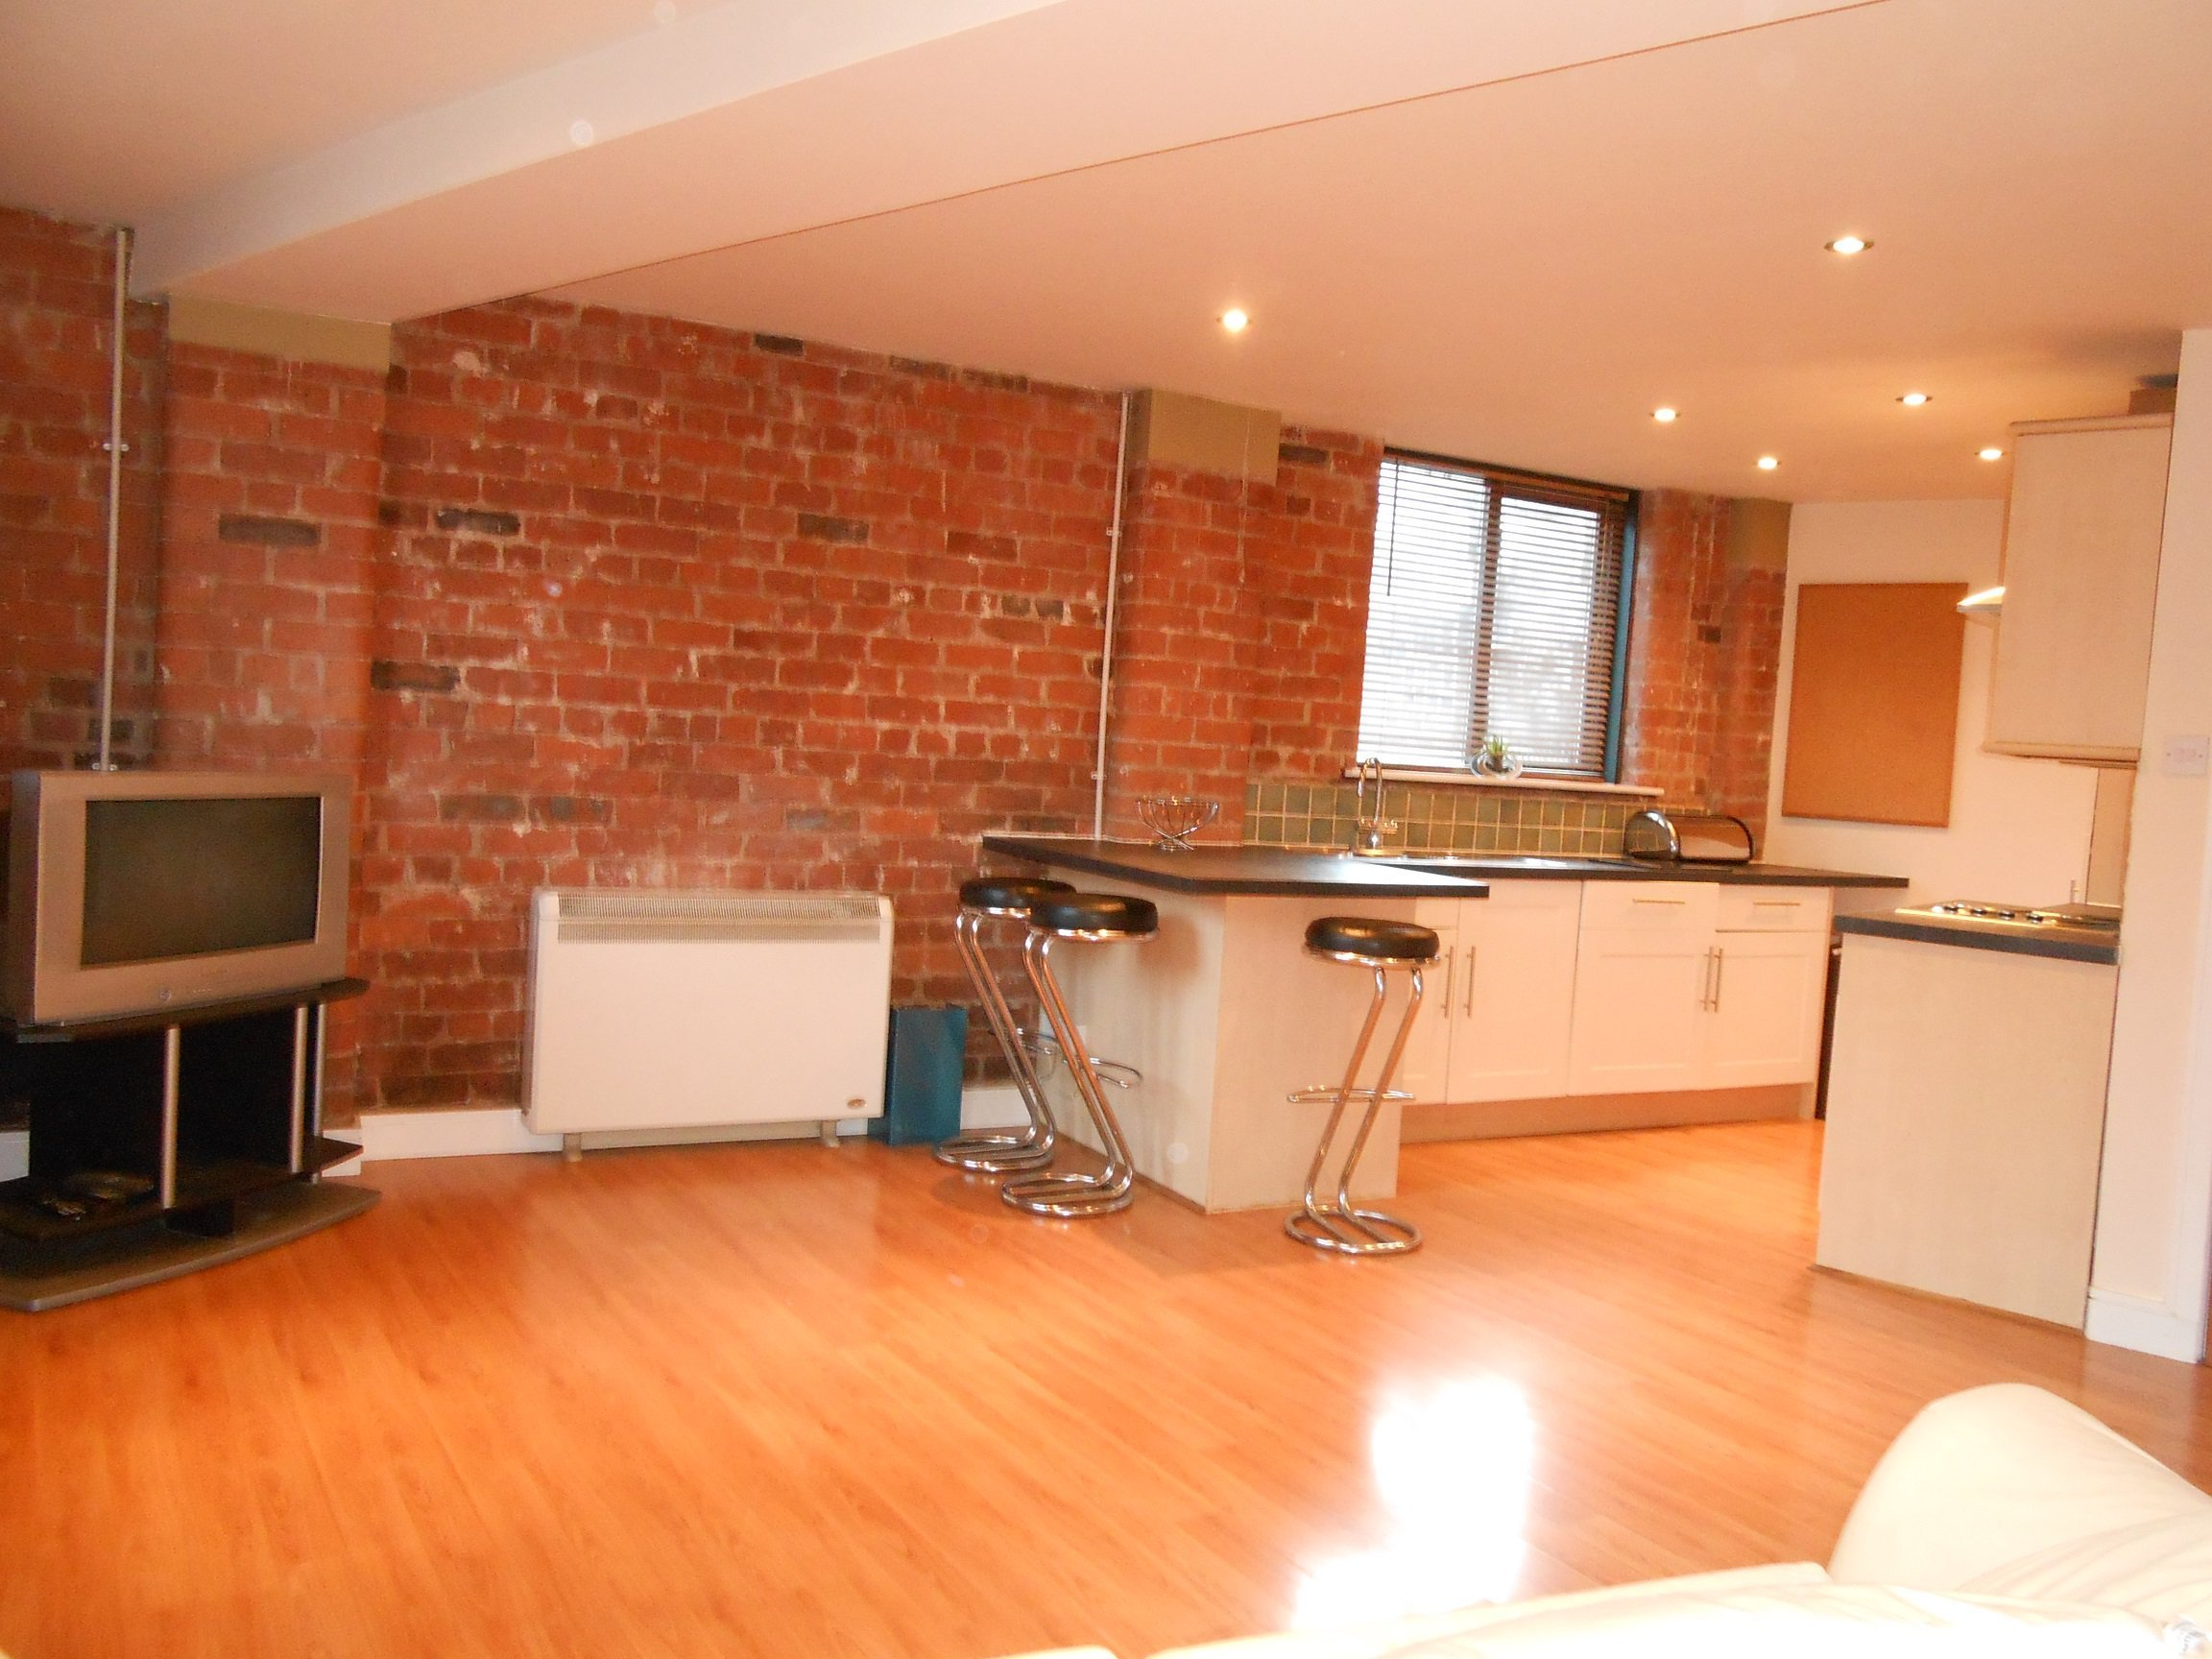 Best 1 Bed Flat To Rent Townley Street Macclesfield Sk11 6Hy With Pictures Original 1024 x 768